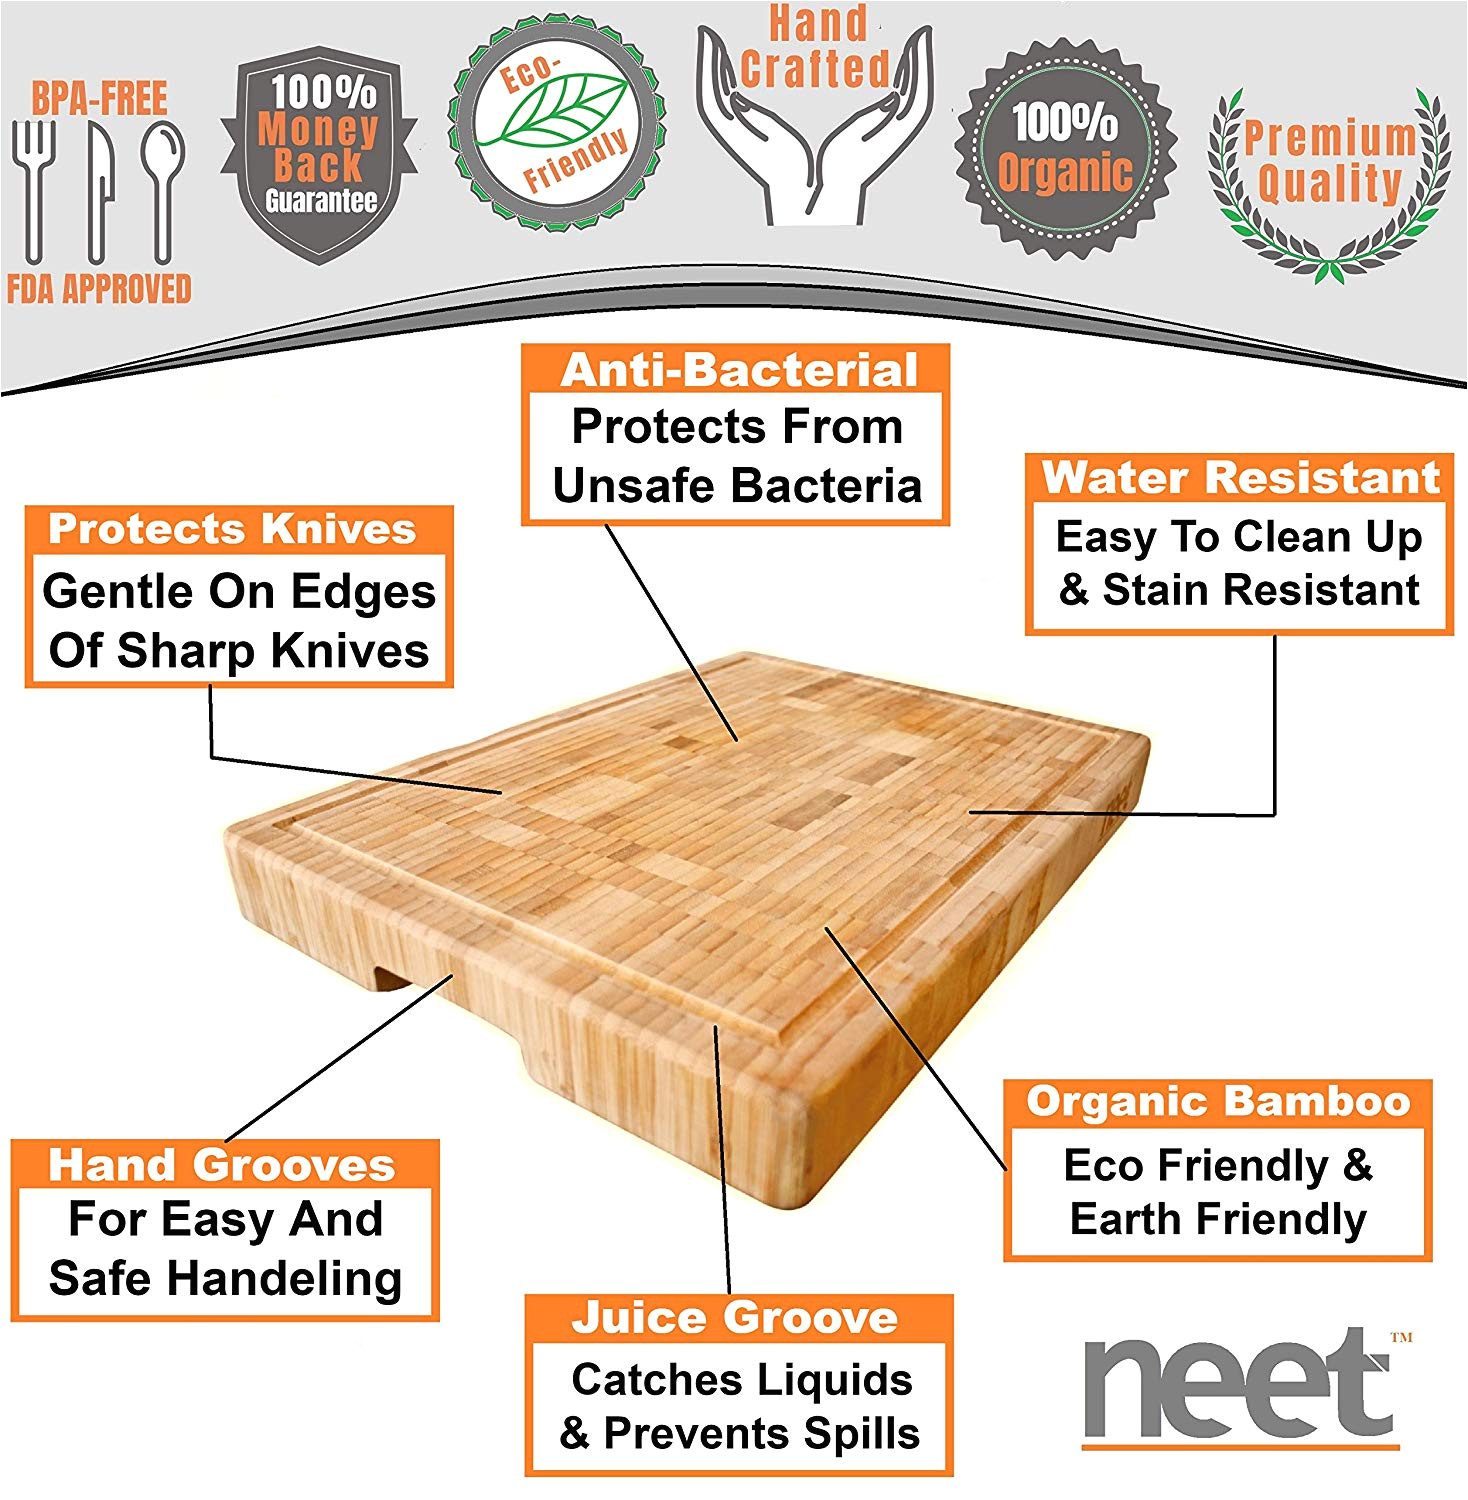 amazon com extra large organic bamboo cutting board end grain butcher block thick heavy solid 18 x 13 x 2 inch anti bacterial wood great for wooden